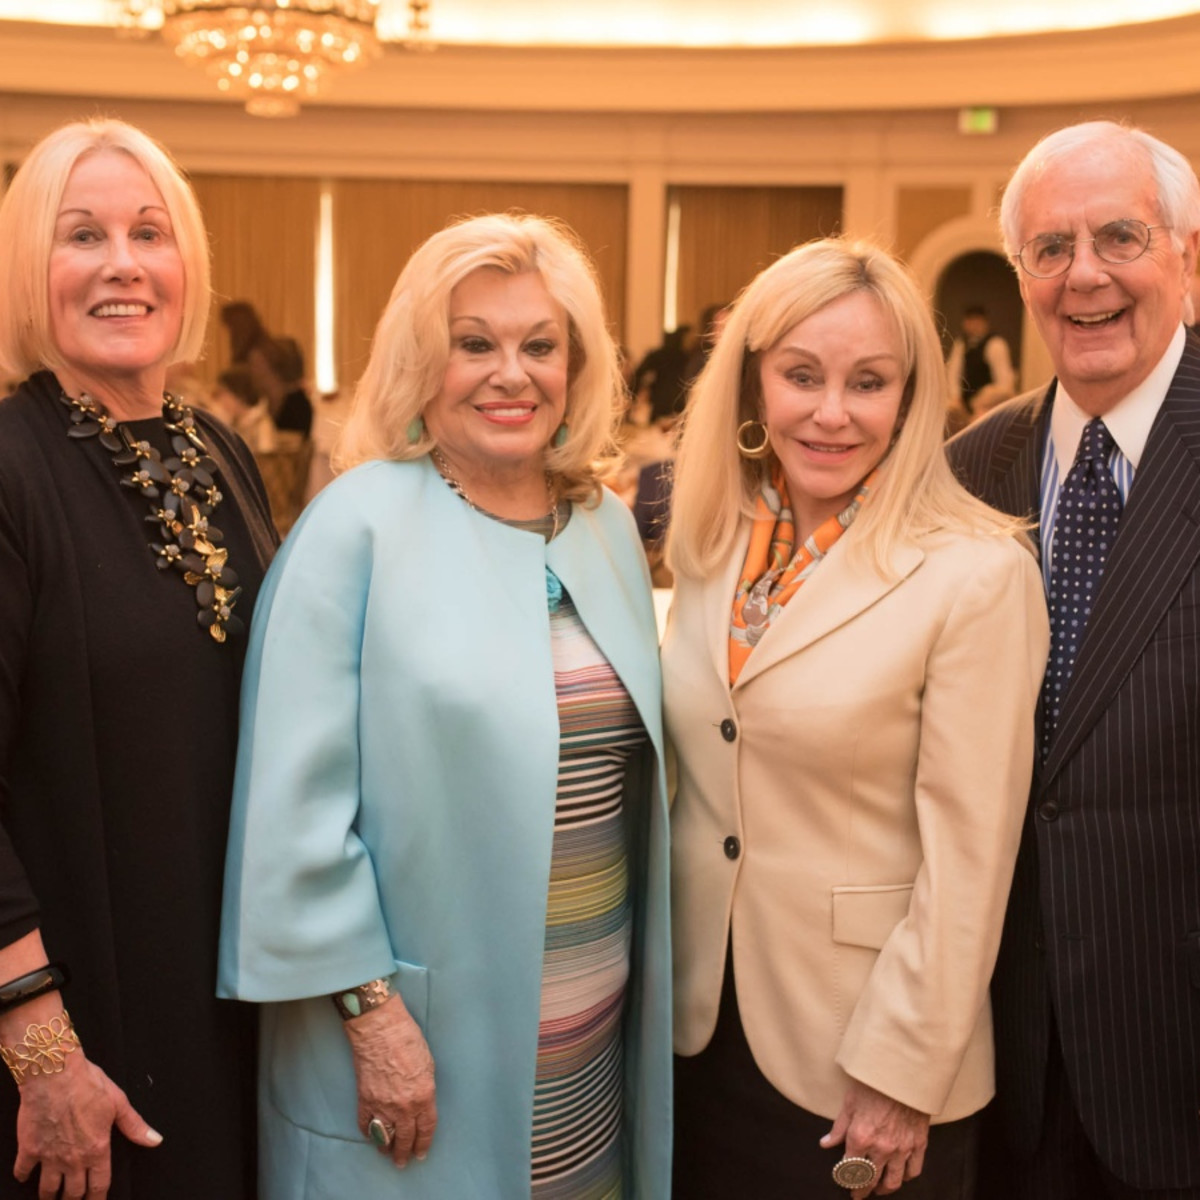 Houston, TCH Celebration of Champions, February 2018, Elsie Eckert, Sidney Faust, Judi McGee, Scott Basinger